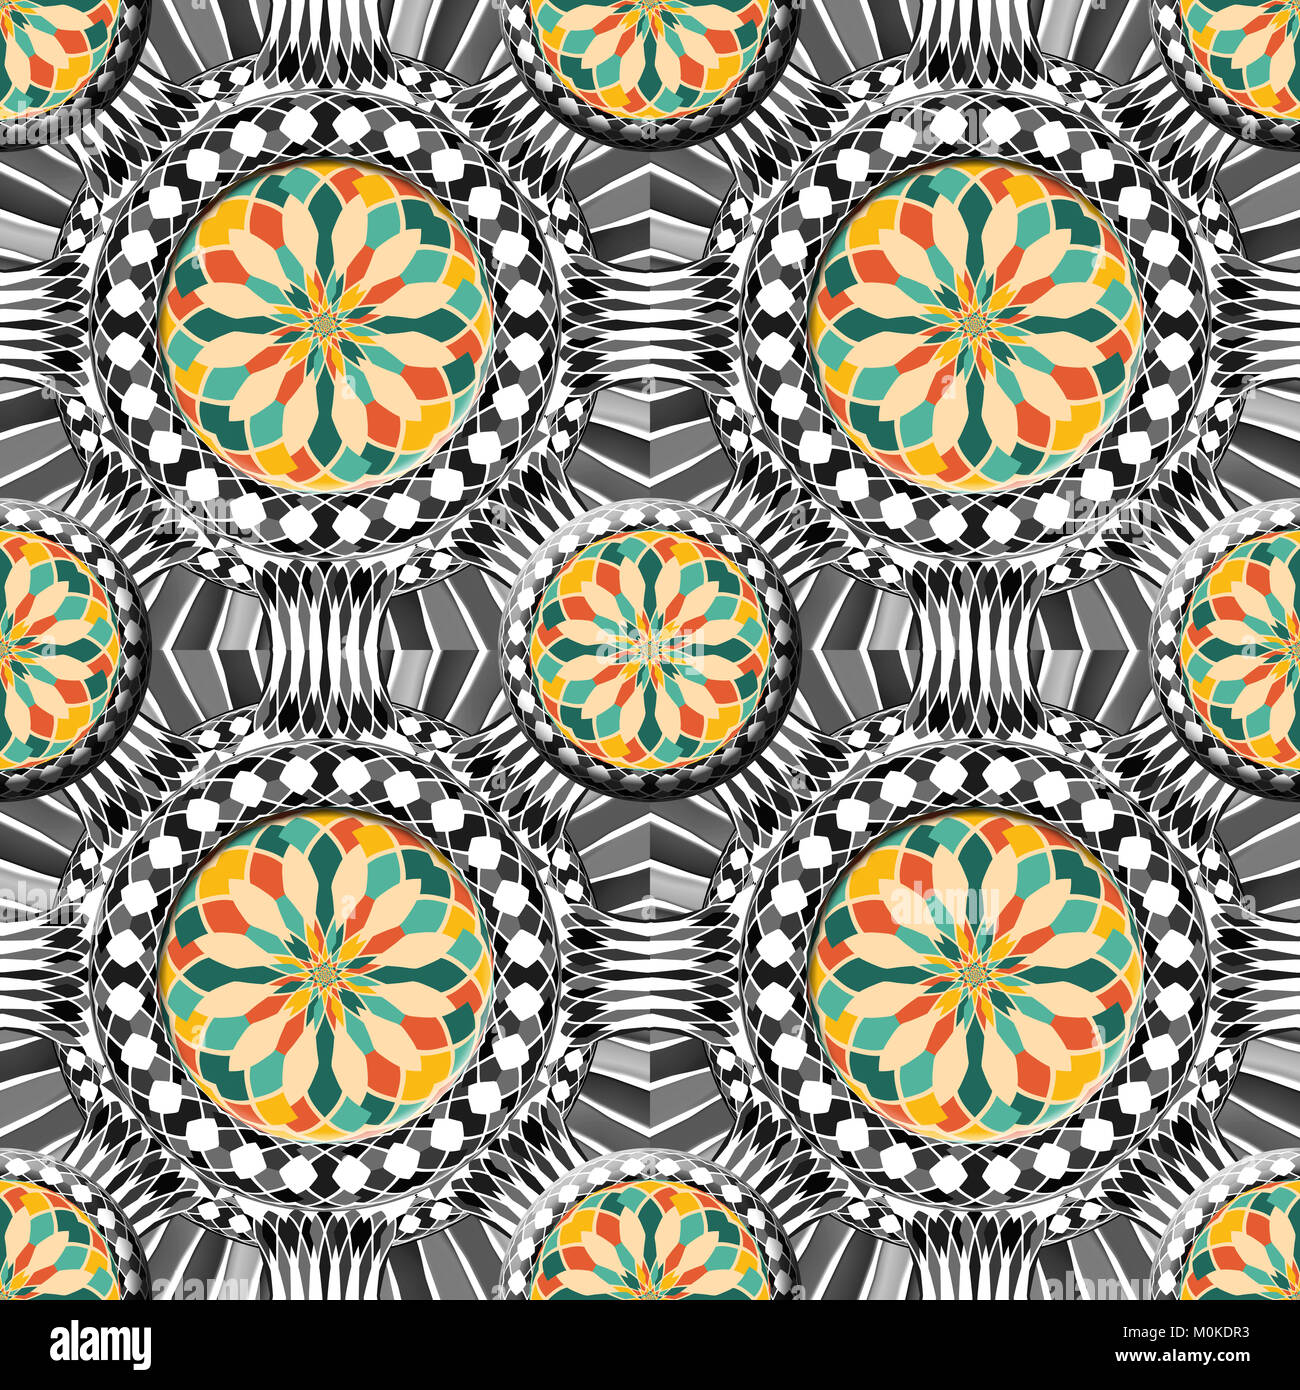 Beveled complex geometric pattern with colorful elements on a black and white background. Stock Photo